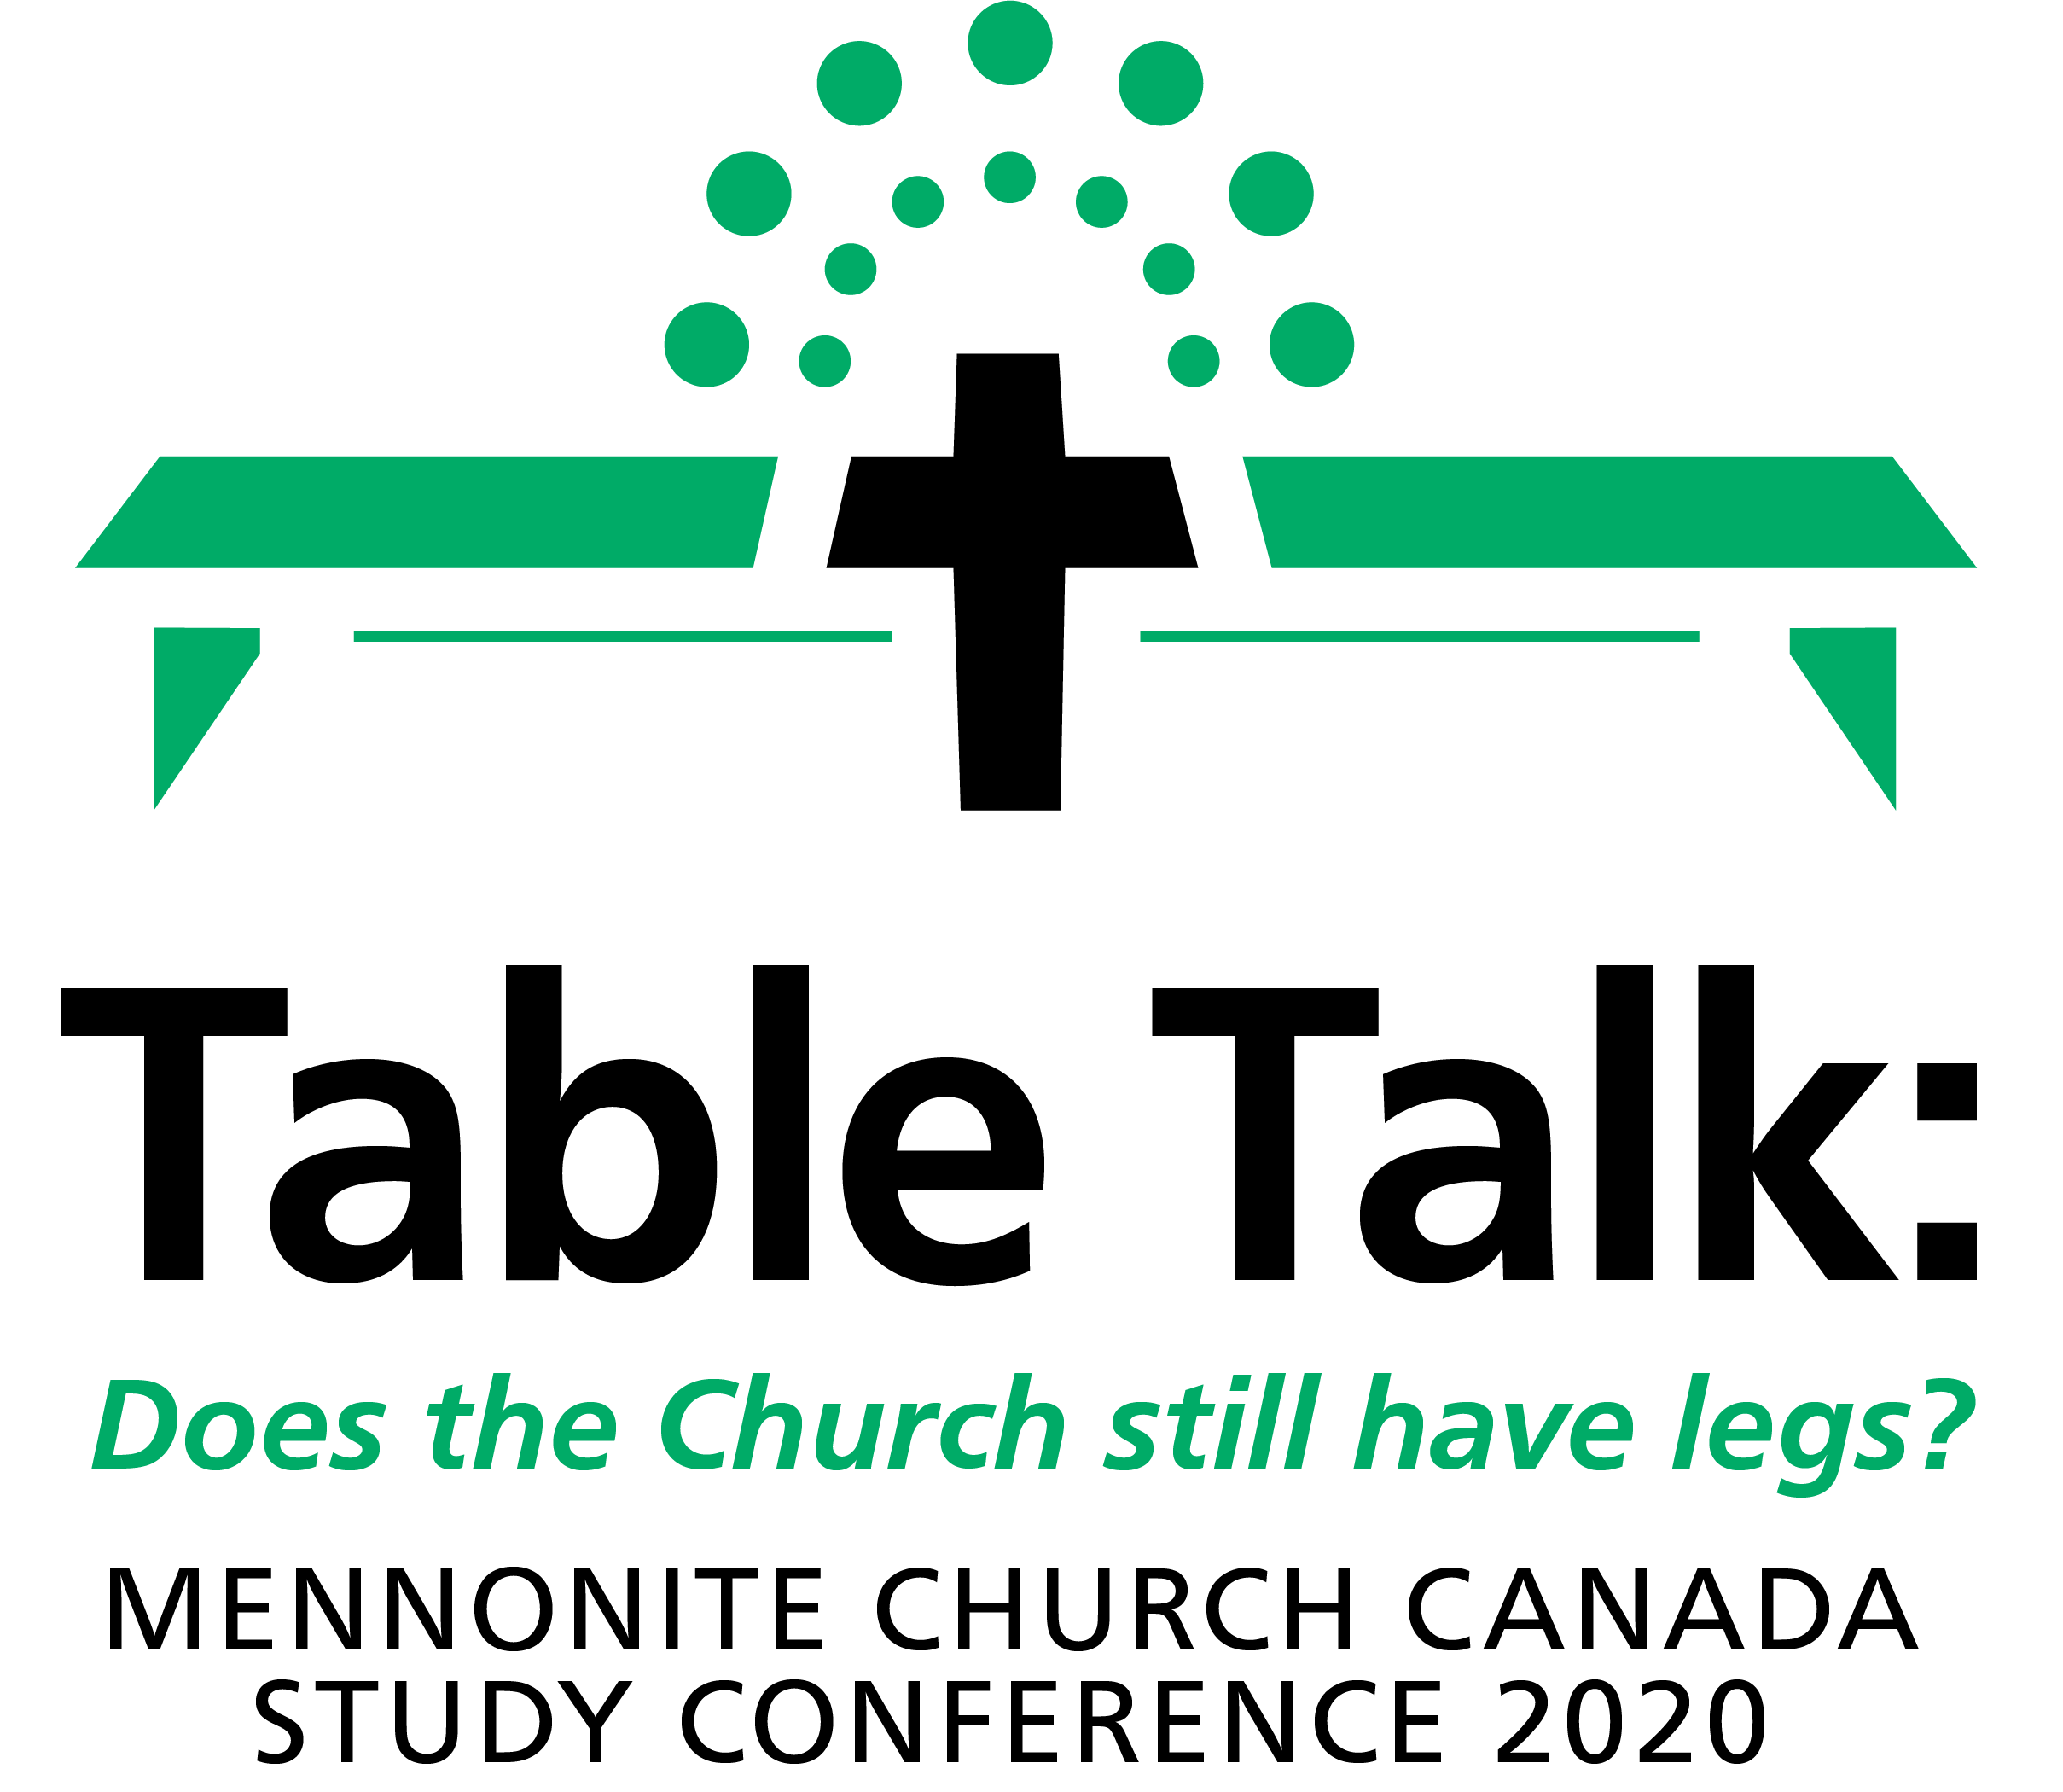 Table Talk: Does the Church still have legs?